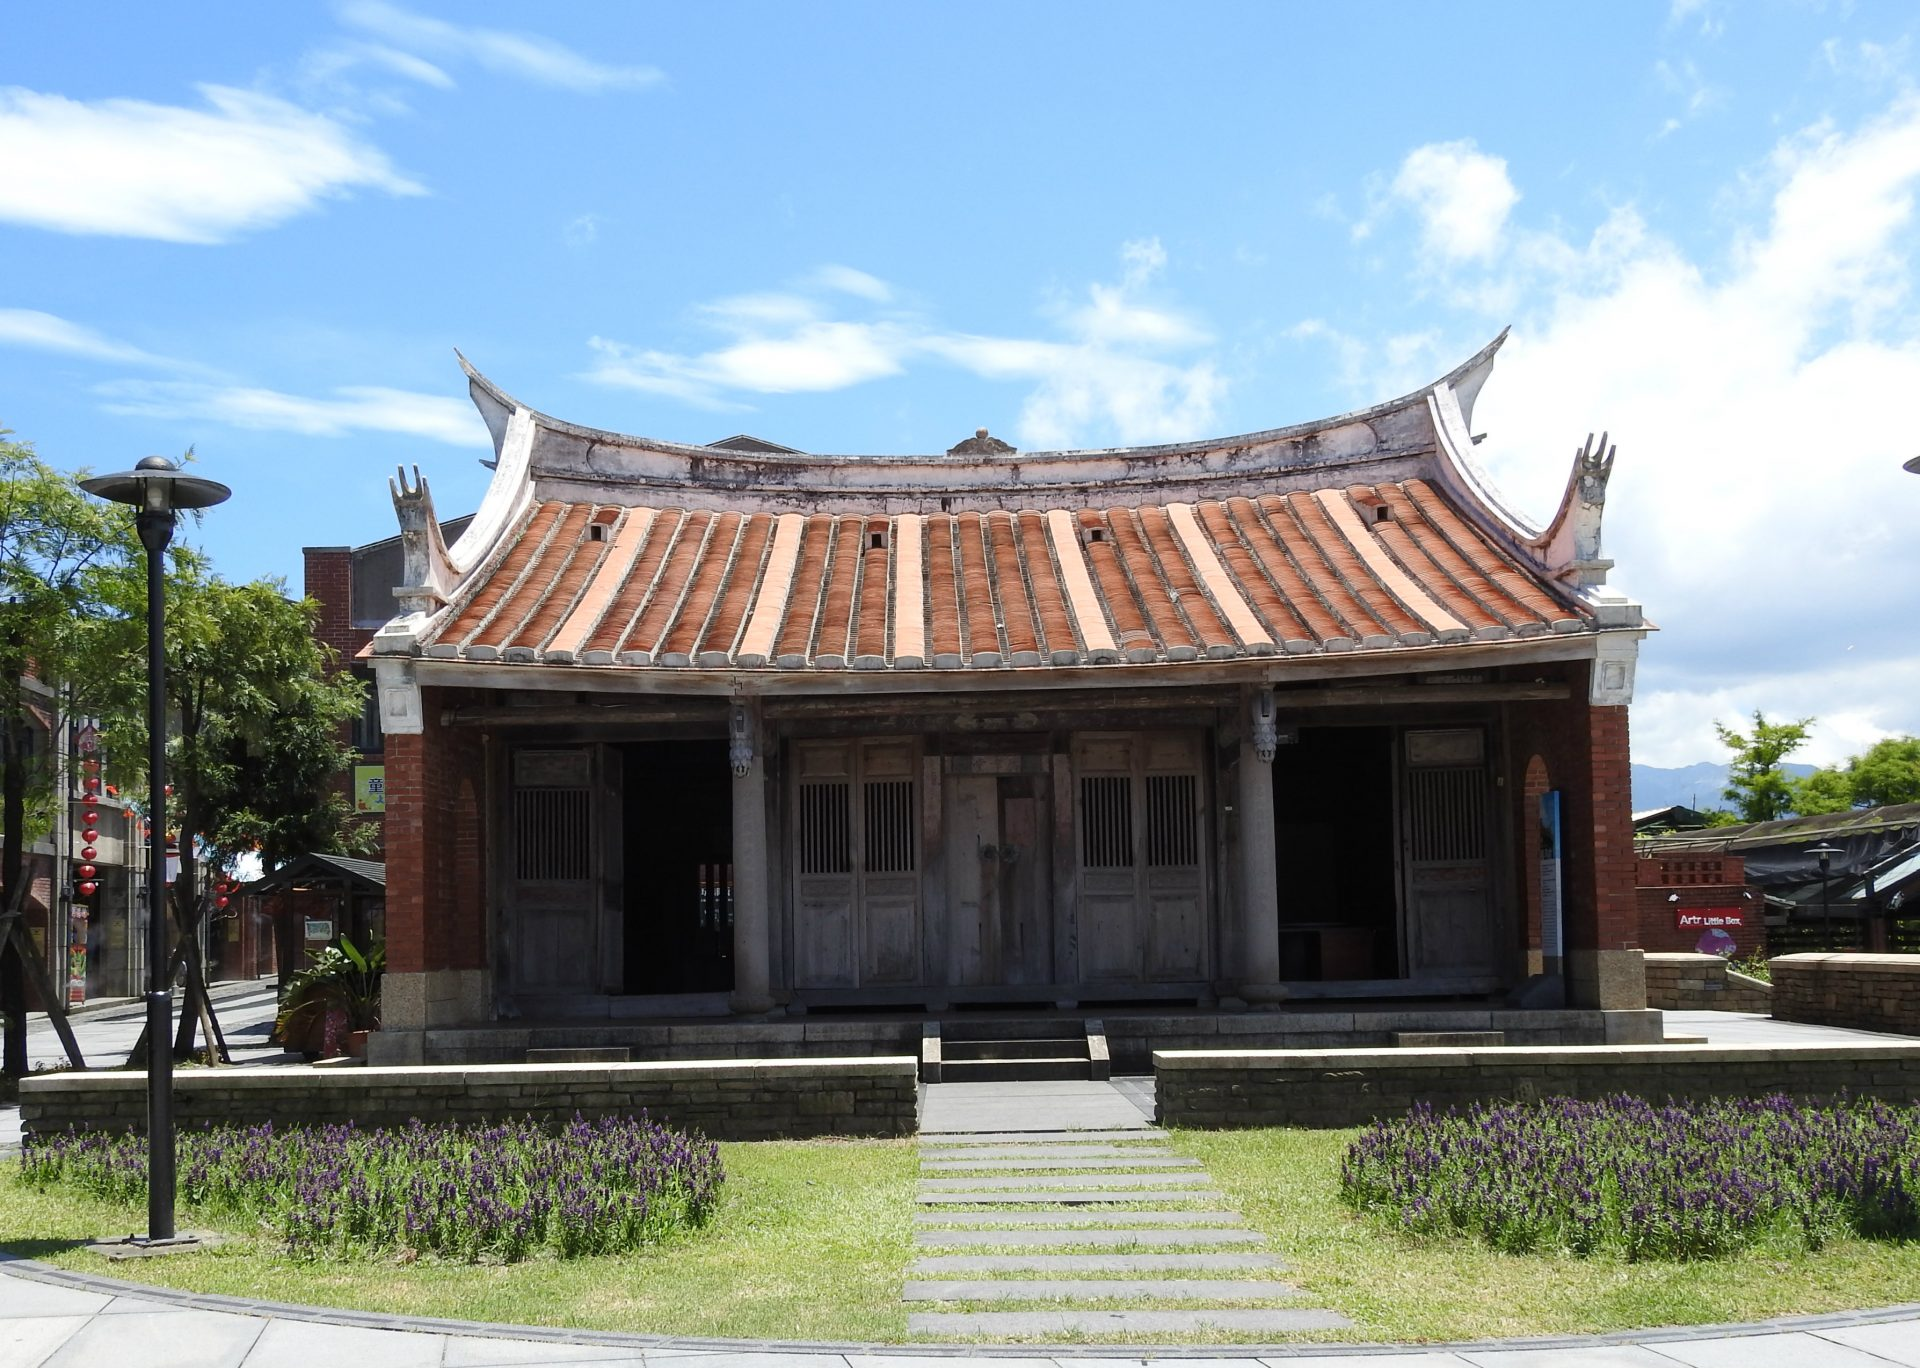 Situated in the center of NCFTA, Guang-Hsiao Shrine (廣孝堂) was built in 1924 and later moved to the current site as an information center providing information about travel in Yilan. (Image: Billy Shyu/ Vision Times)